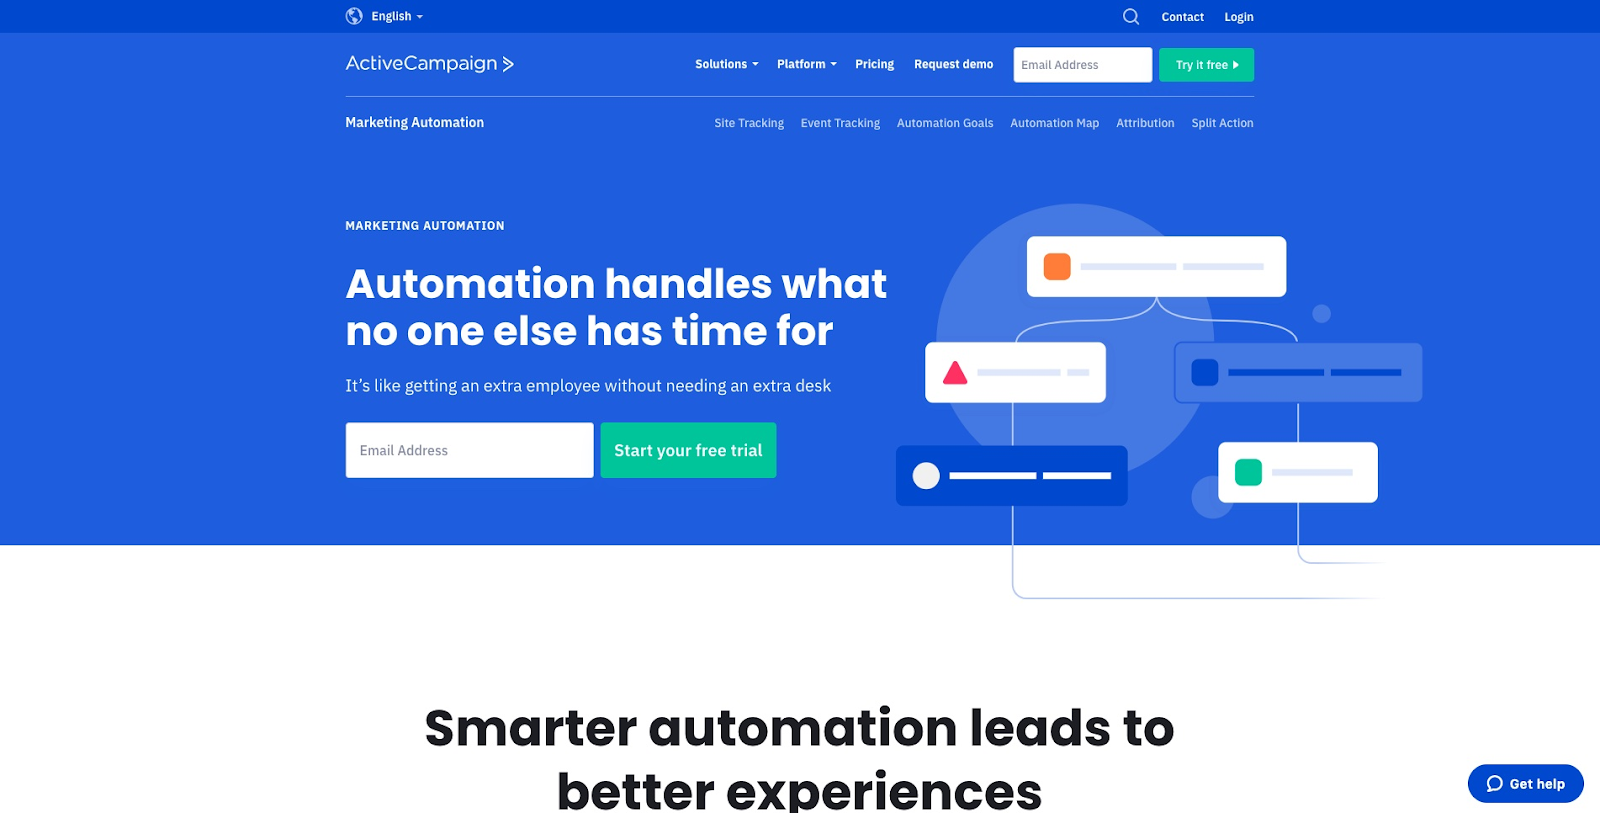 Screenshot of active campaign marketing automation landing page